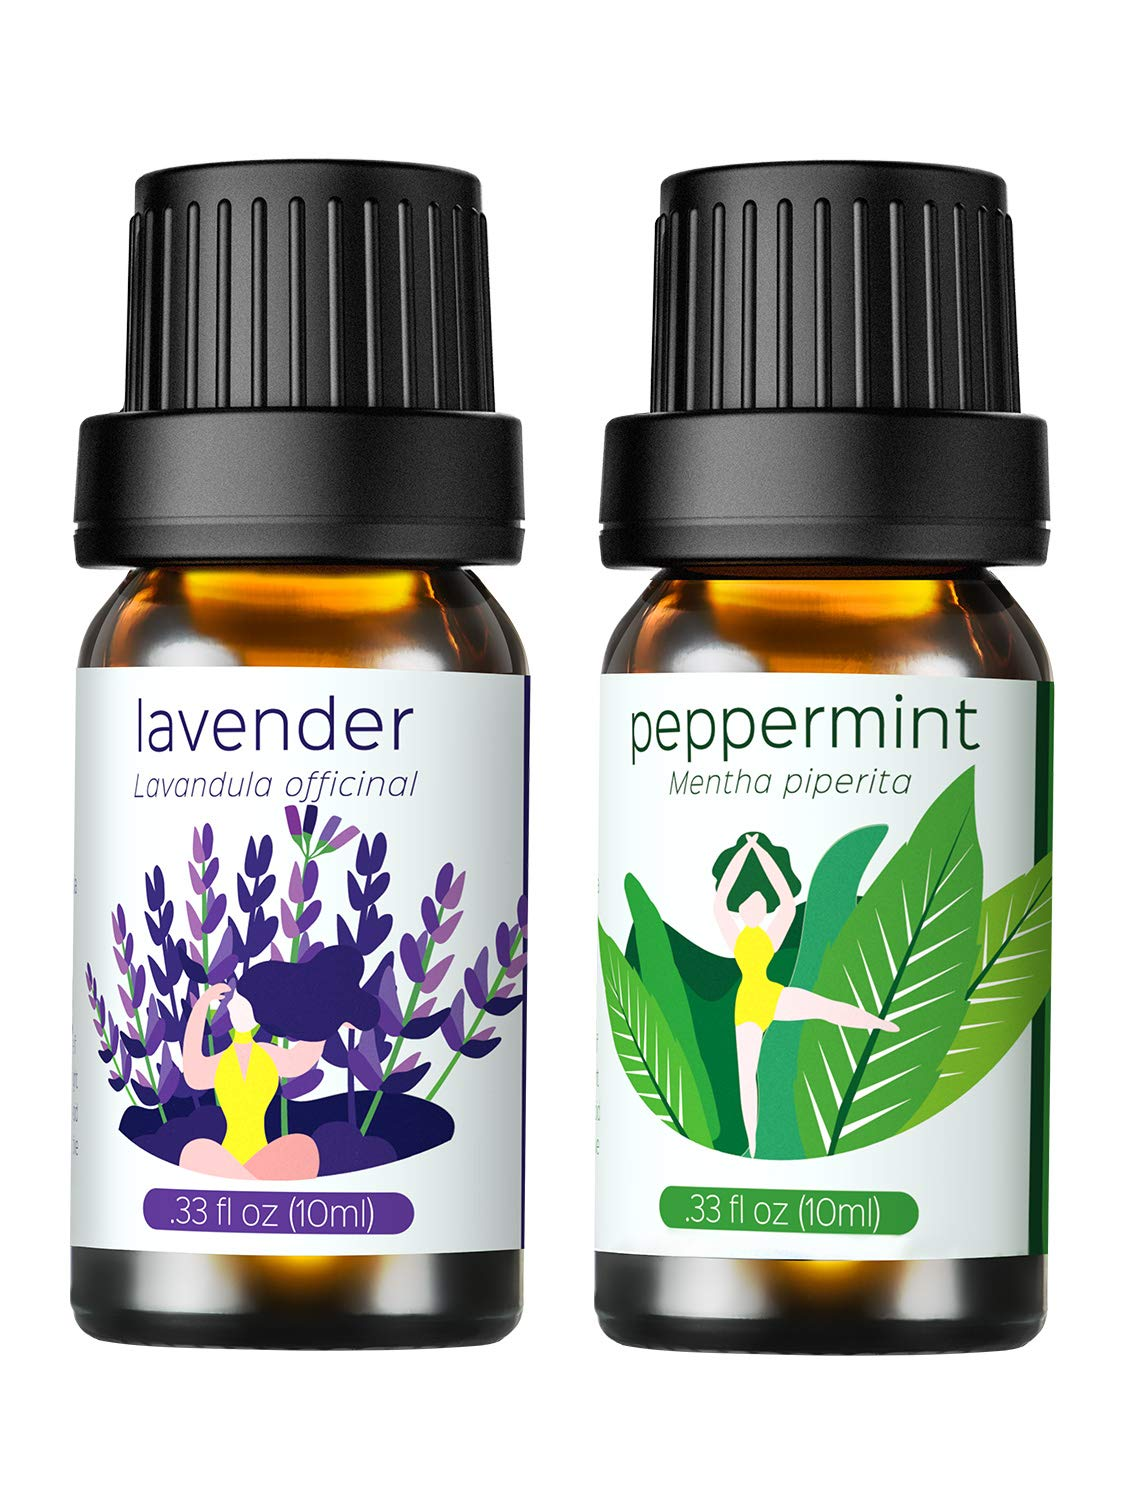 Homasy Essential Oils Gift Set (Lavender, Peppermint) 100% Pure Natural Aromatherapy Premium Therapeutic Grade Oils Kit - 2 x 10ml/Bottle VicTsing